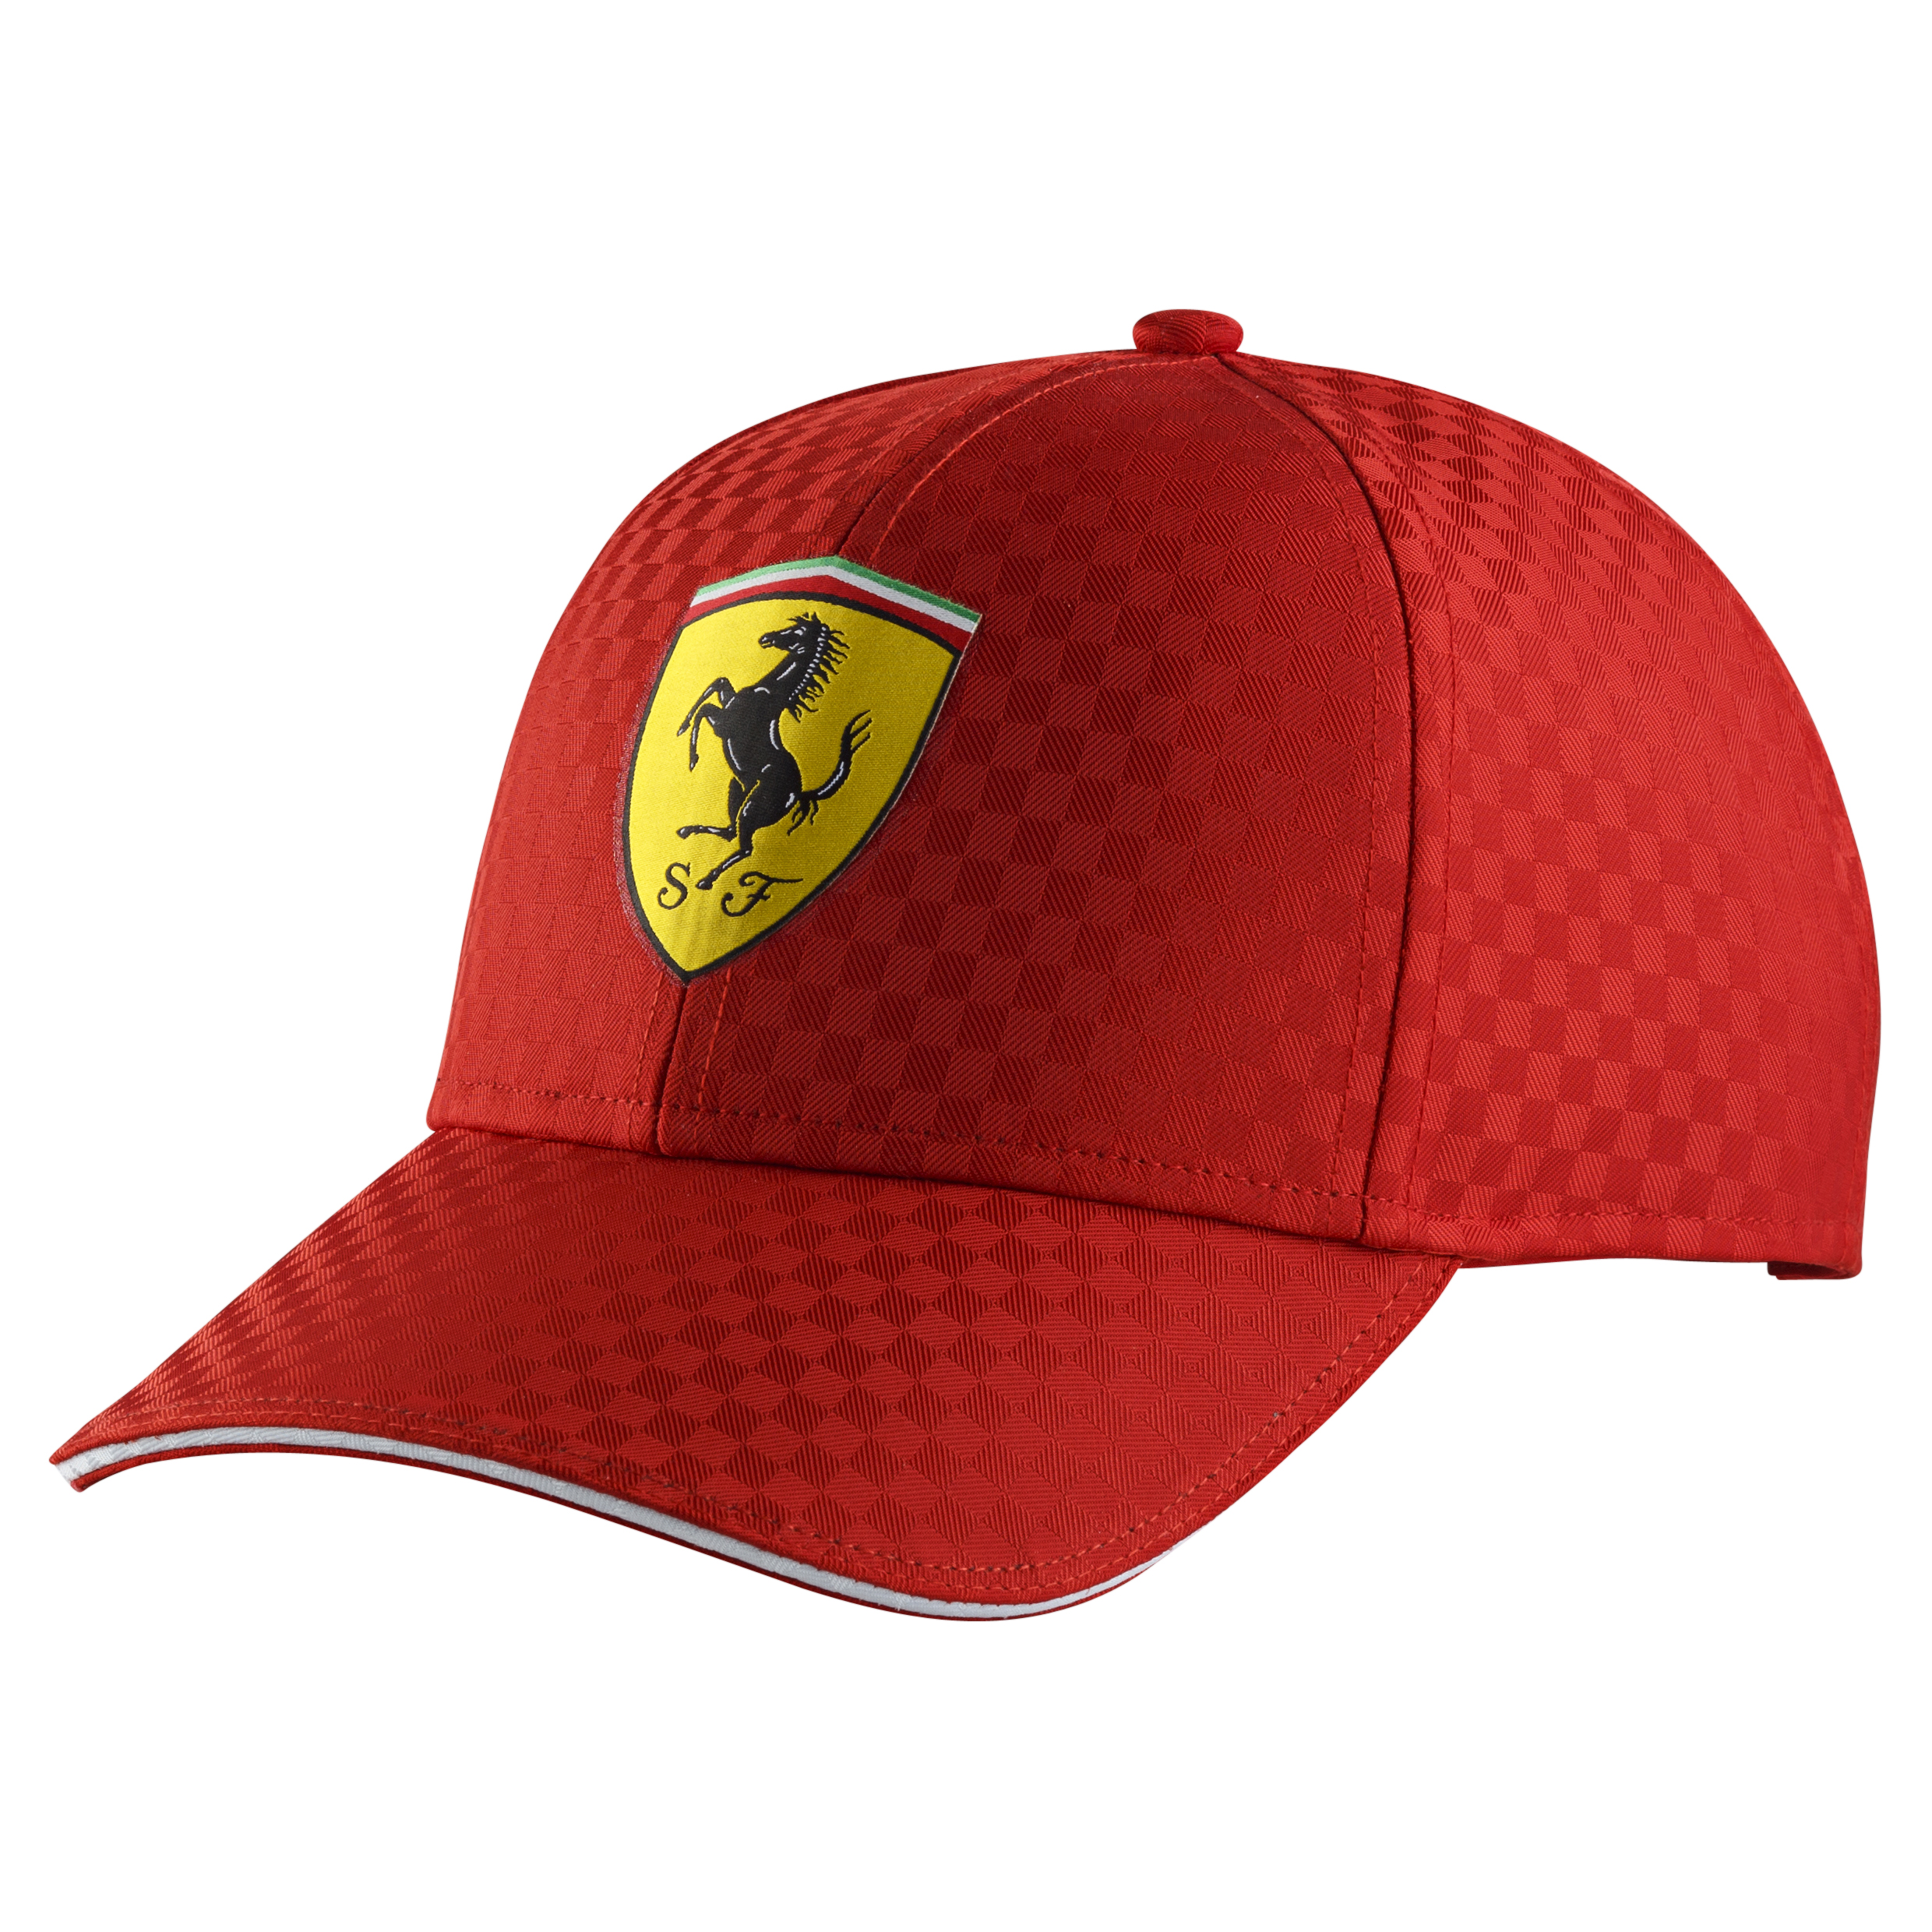 Scuderia Ferrari Racing Check Cap - Red